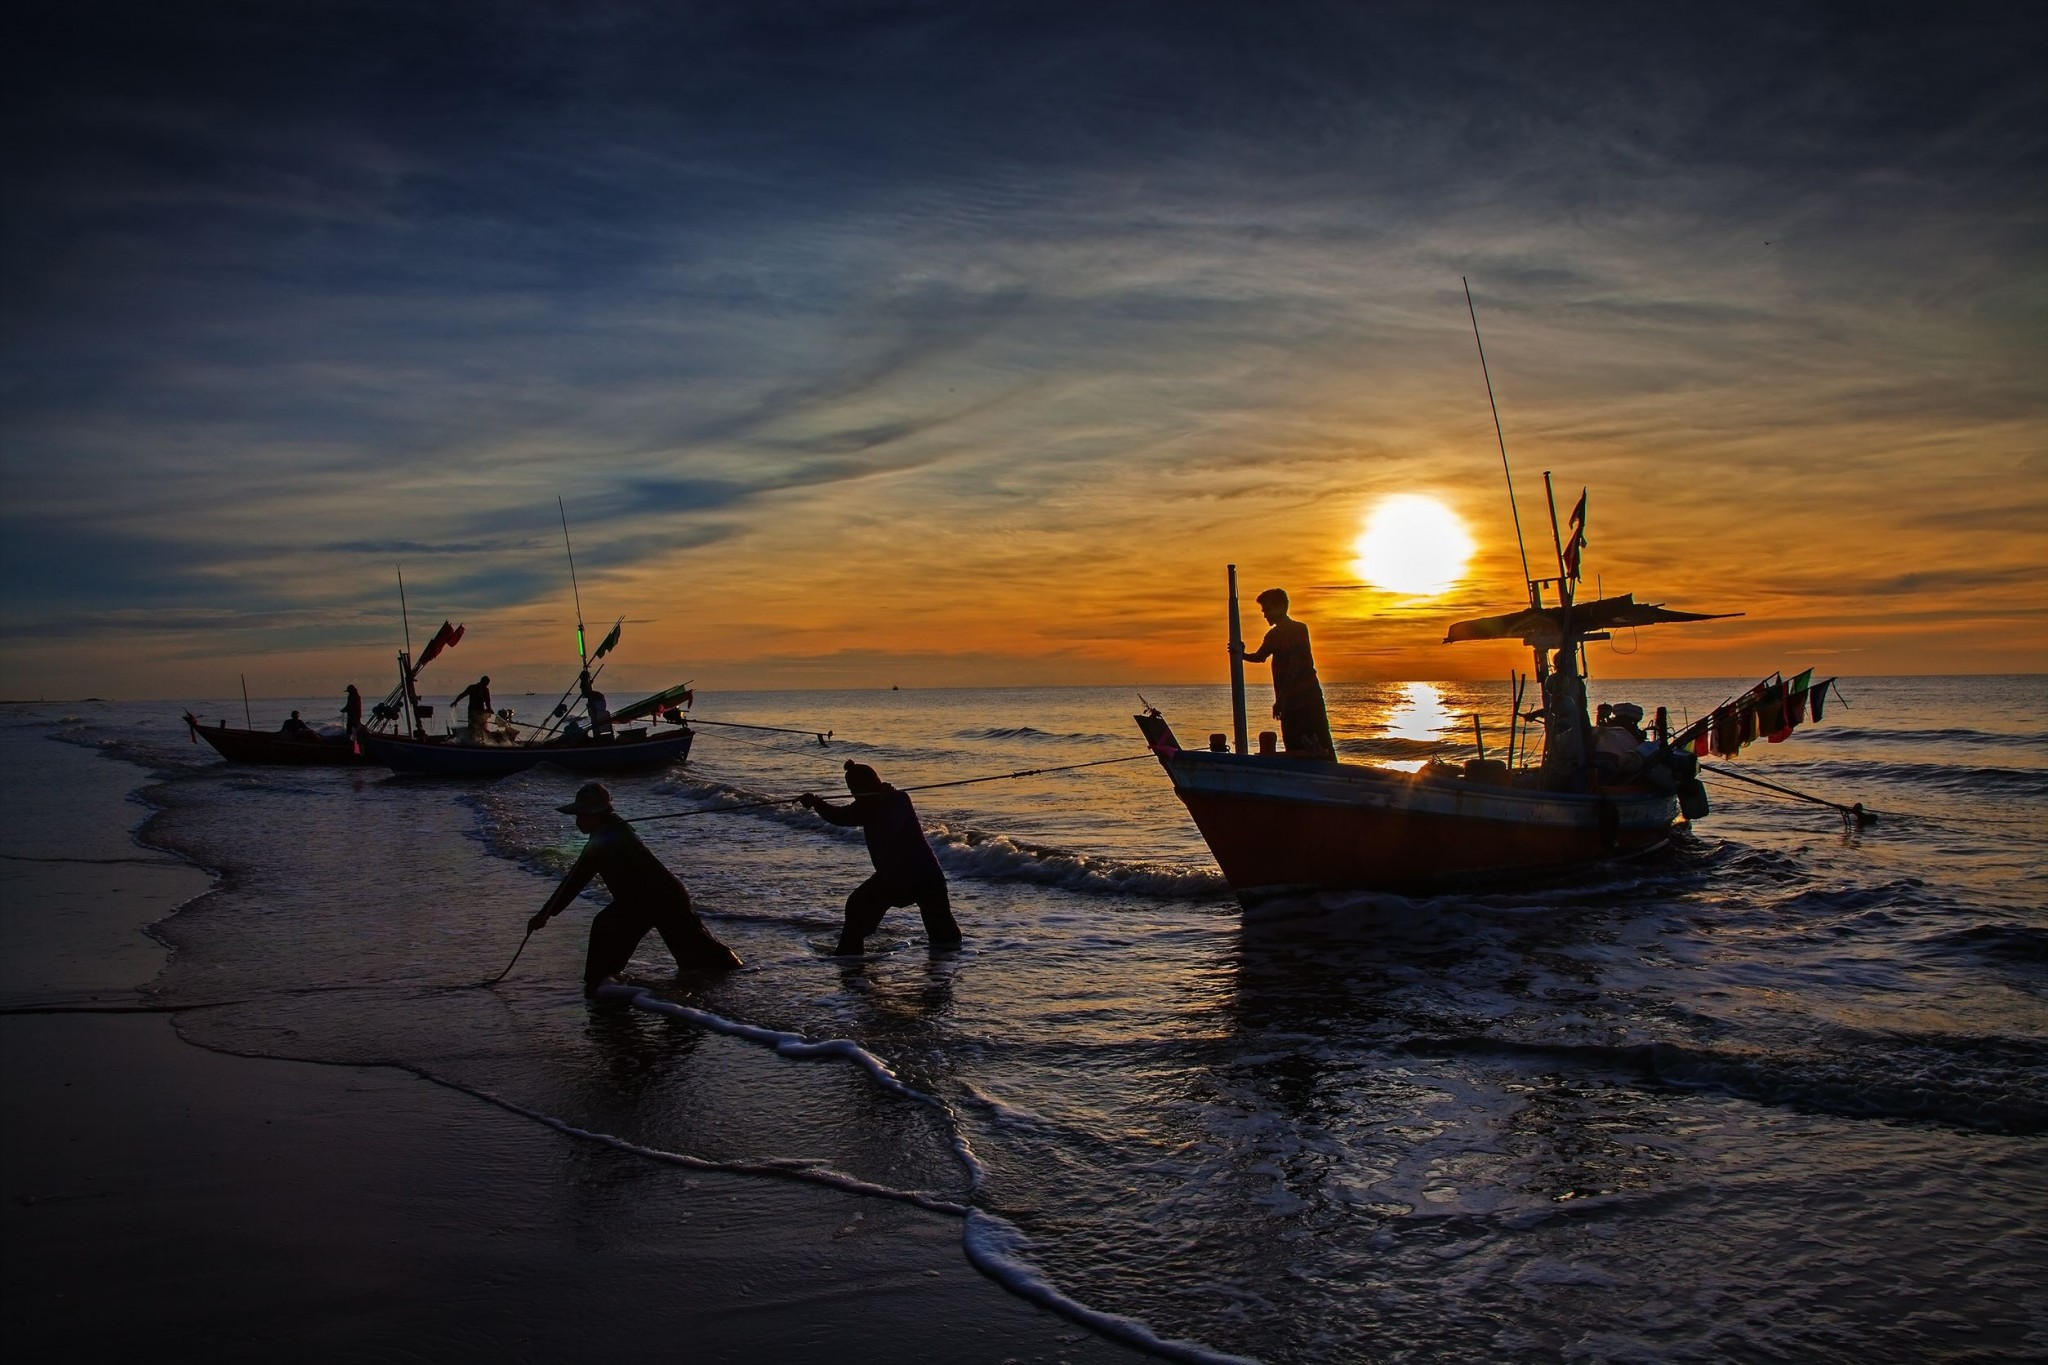 Silhouette of fisherman with sunrise in the background